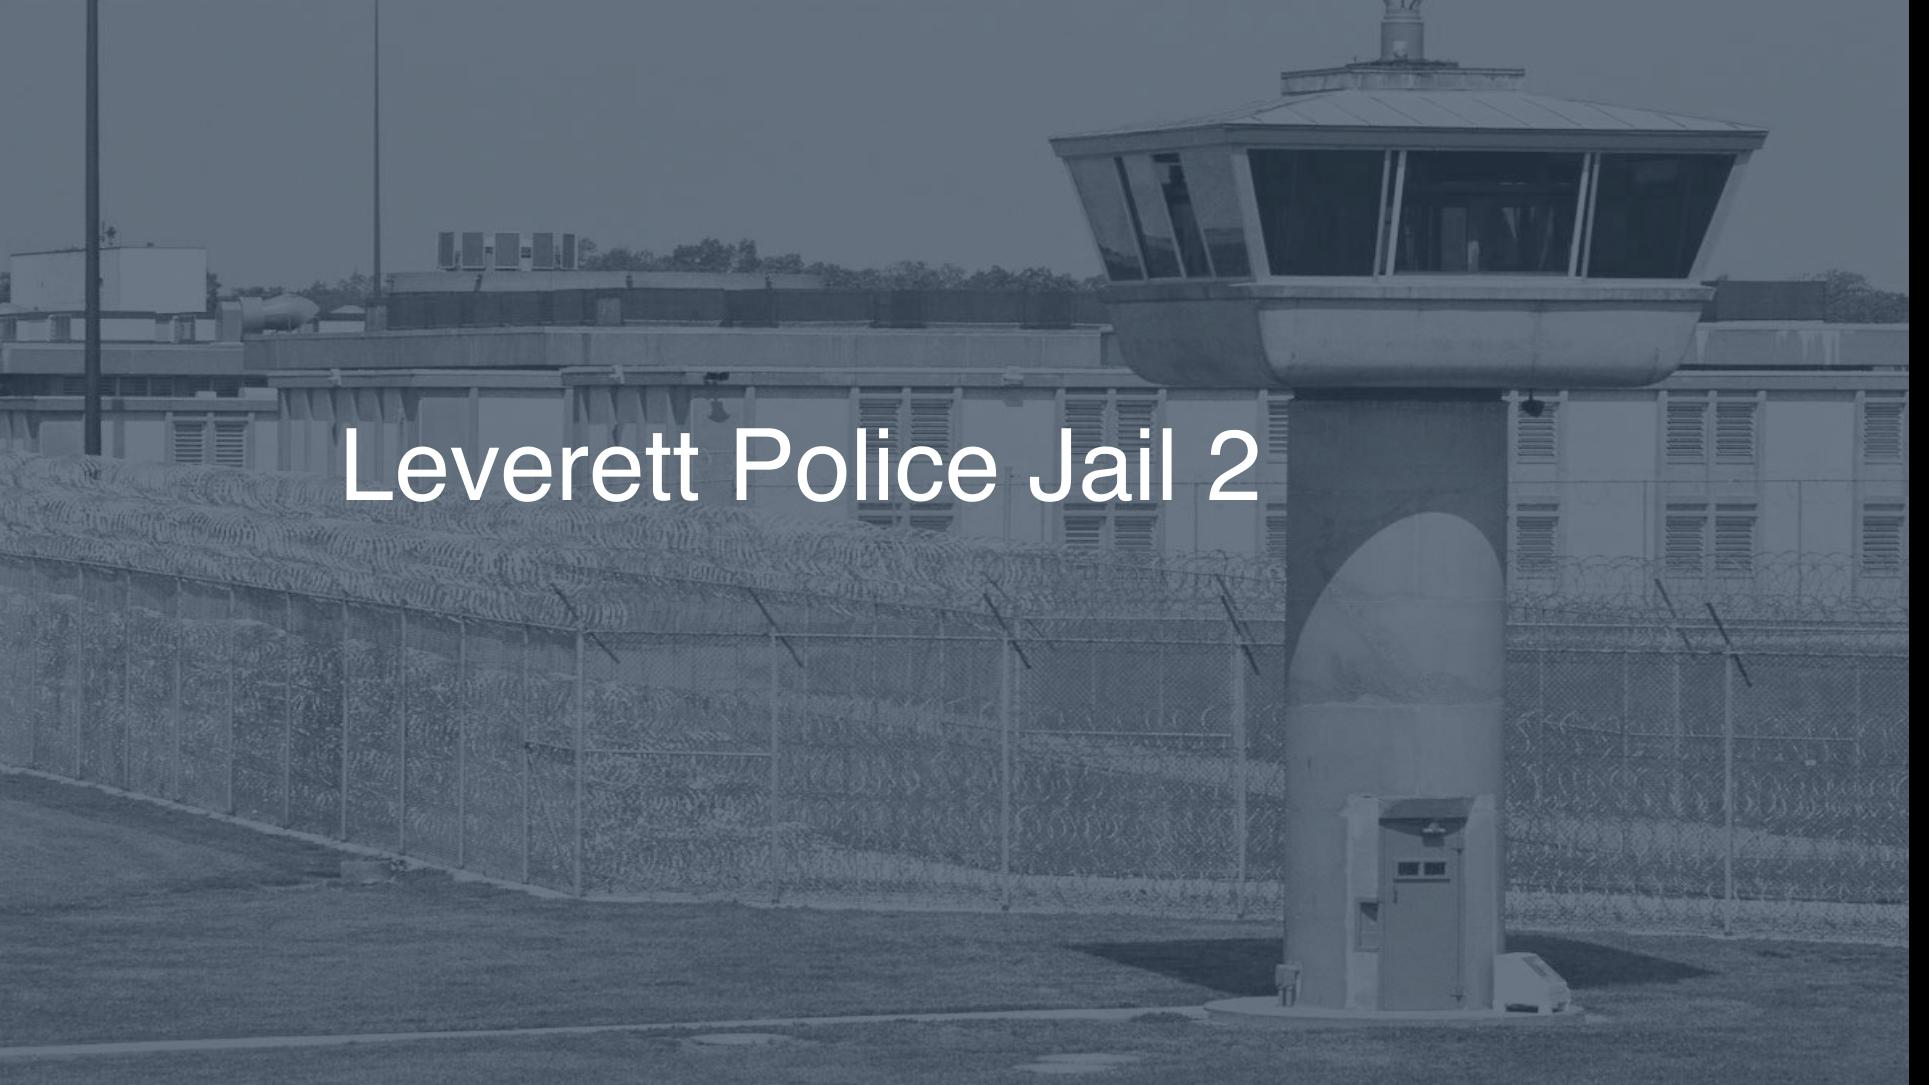 Leverett Police Jail correctional facility picture